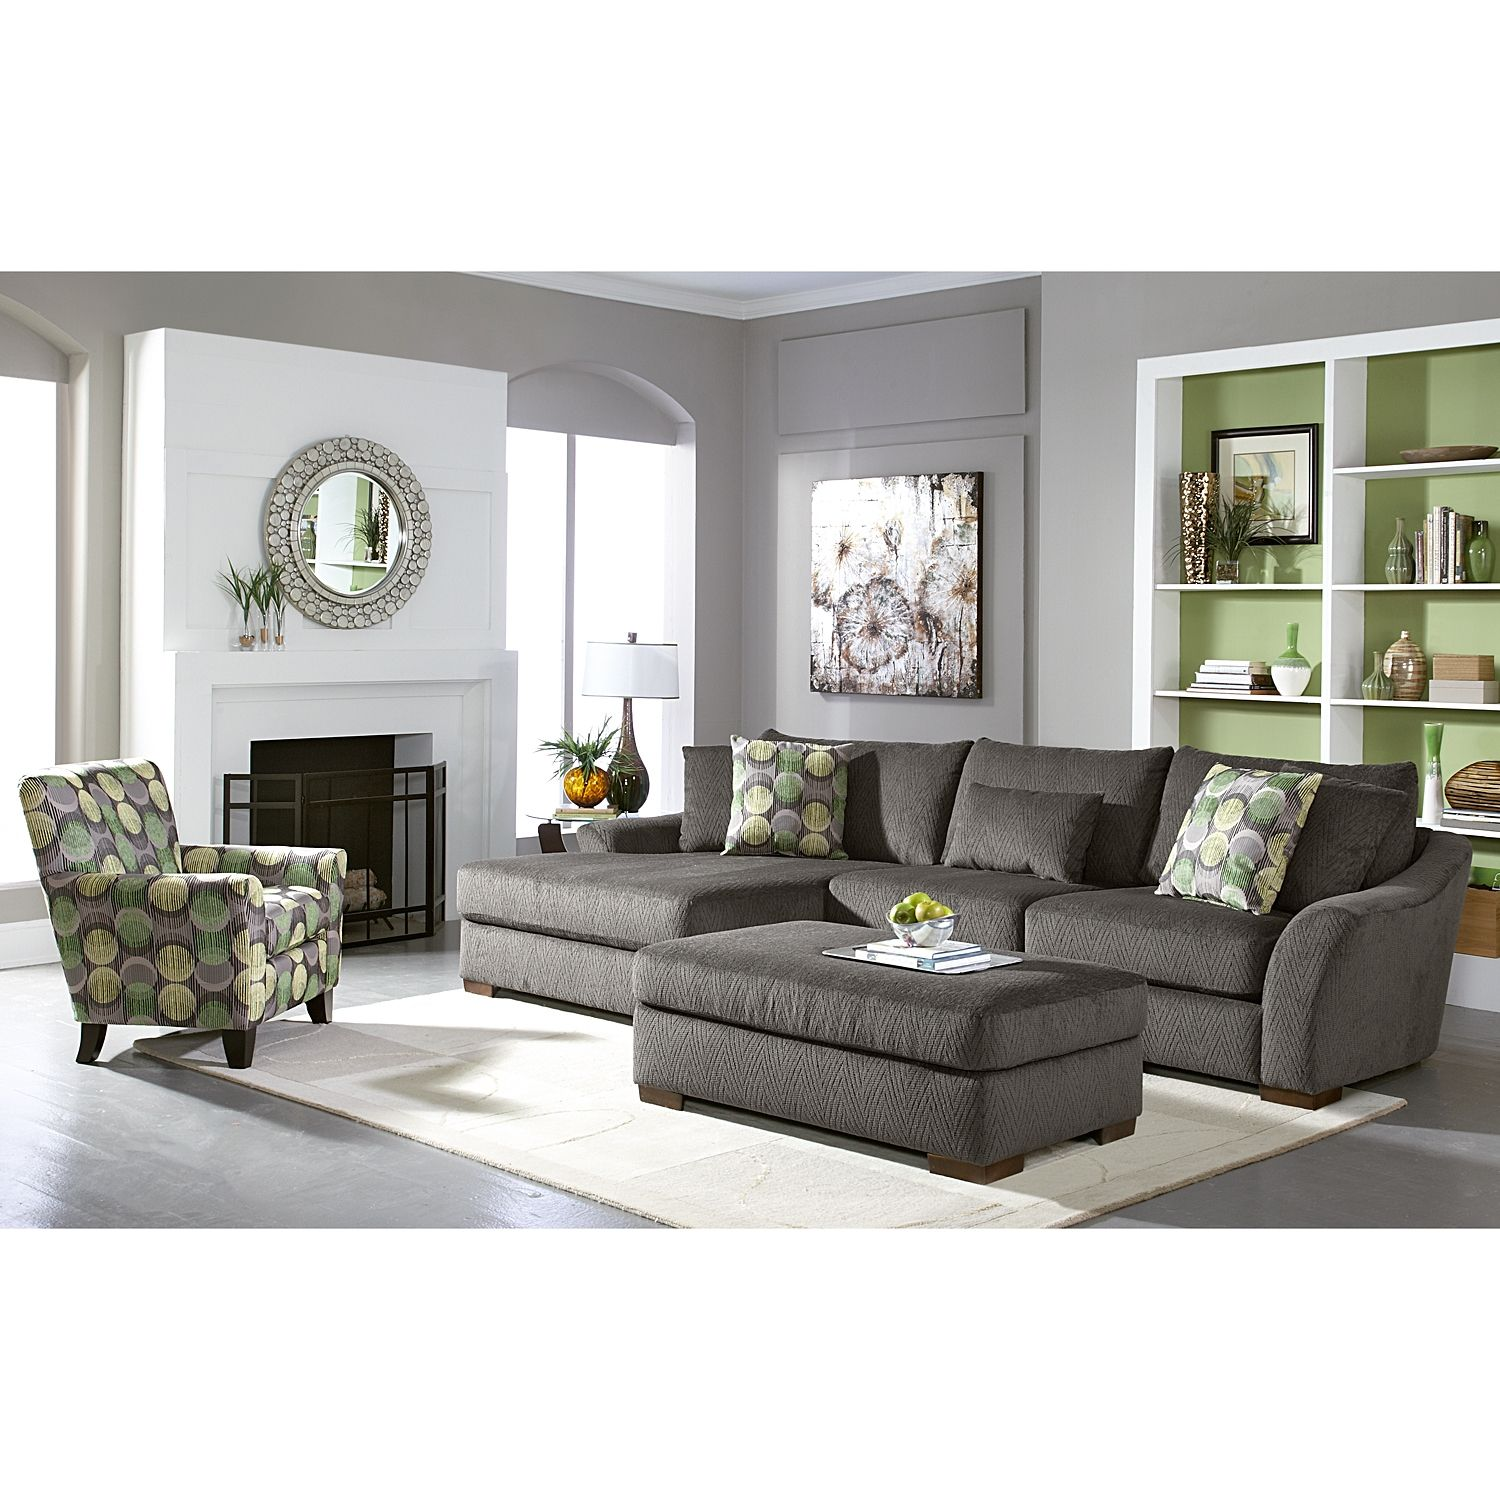 Grey Living Room Chairs Living Room Furniture Orleans Gray 2 Pc Sectional La